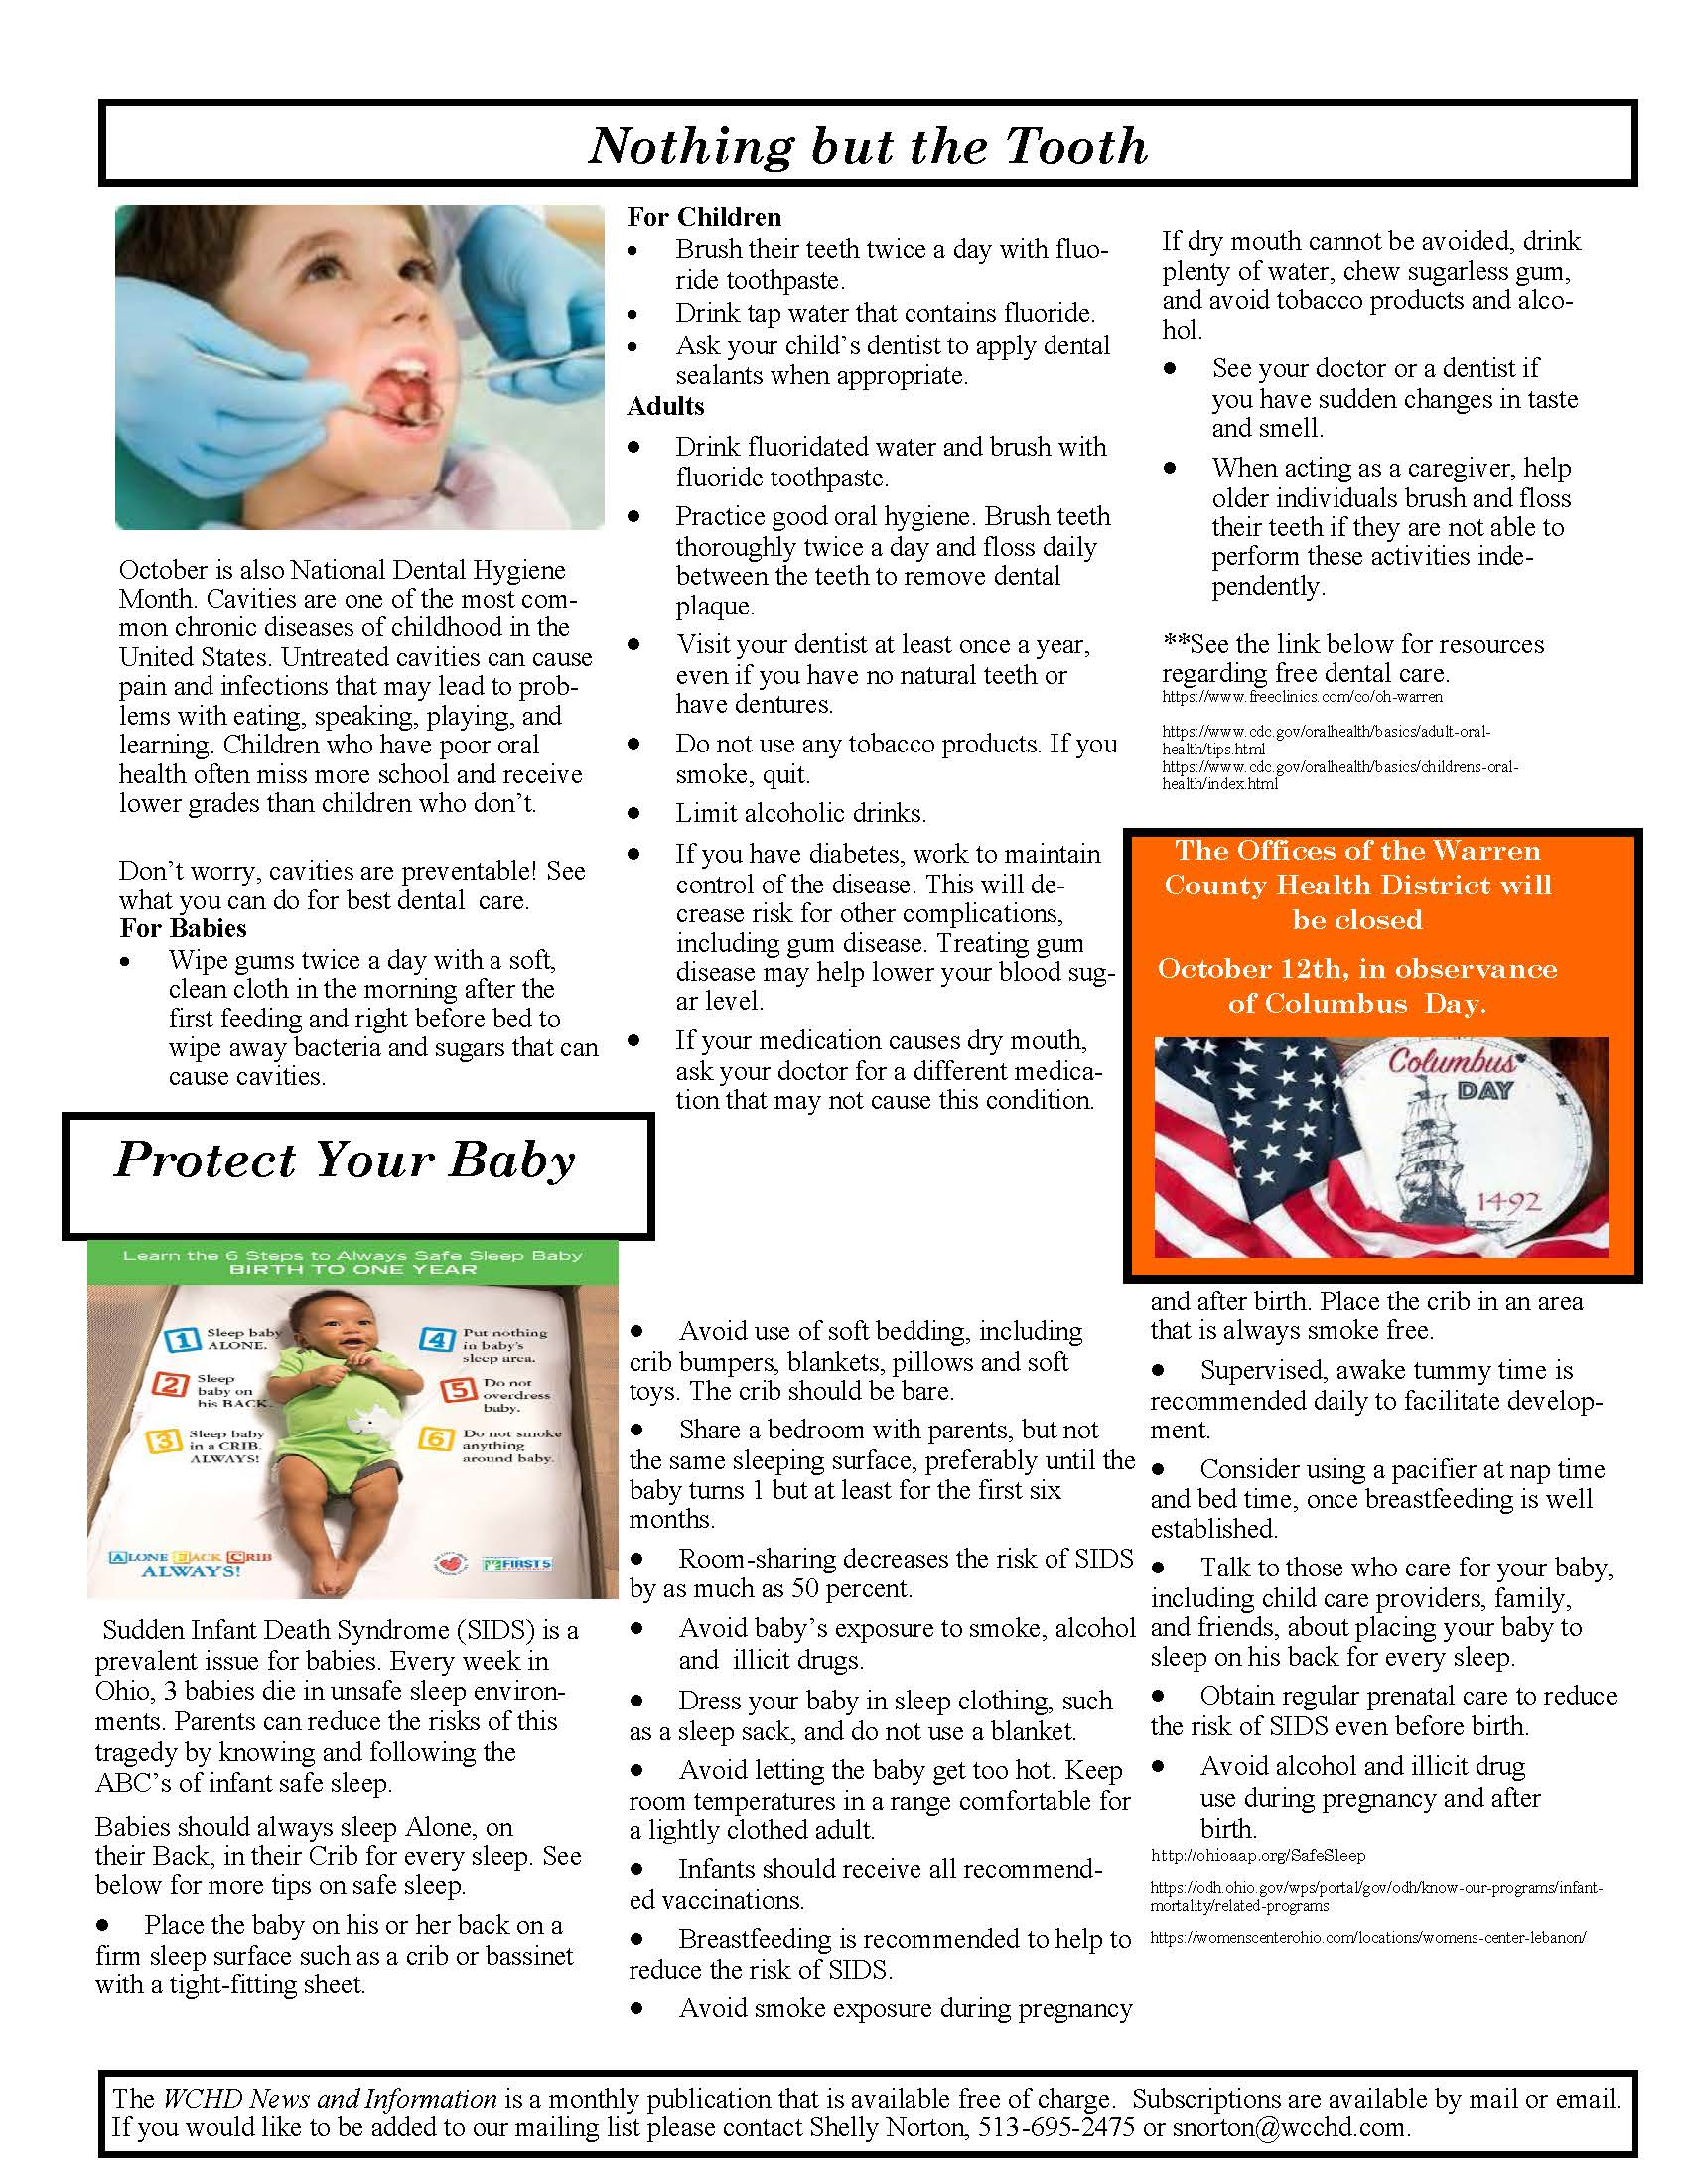 Warren County Health District Newsletter Page 2